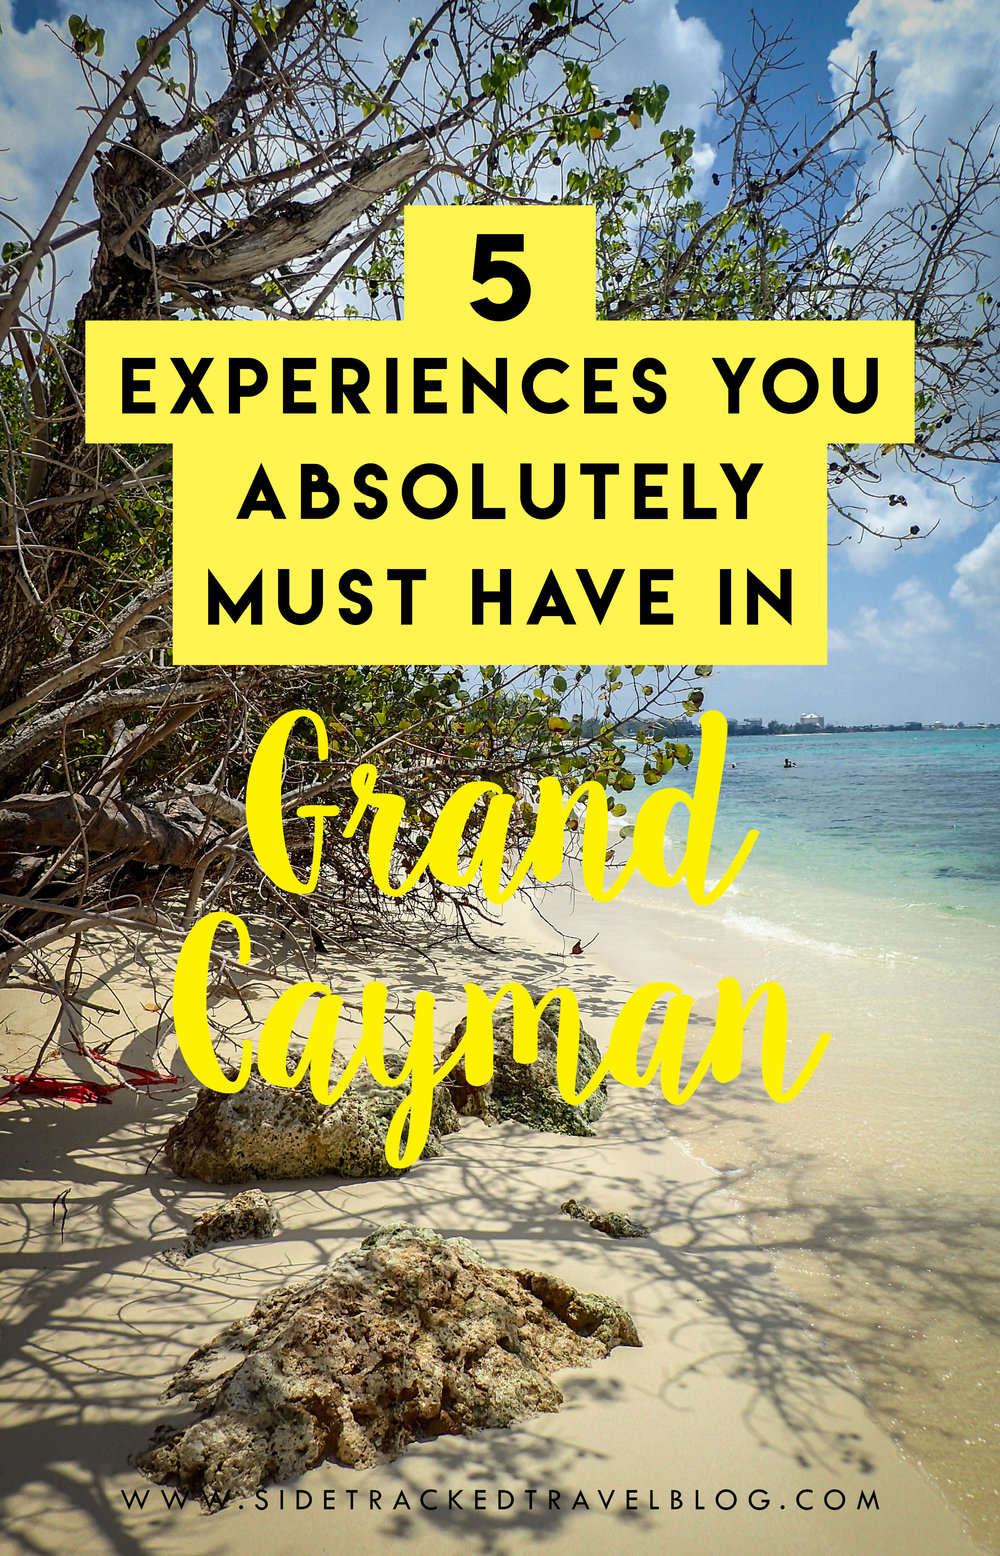 Planning your trip to the Caribbean? Here is a helpful guide highlighting five experiences you absolutely must have in Grand Cayman.